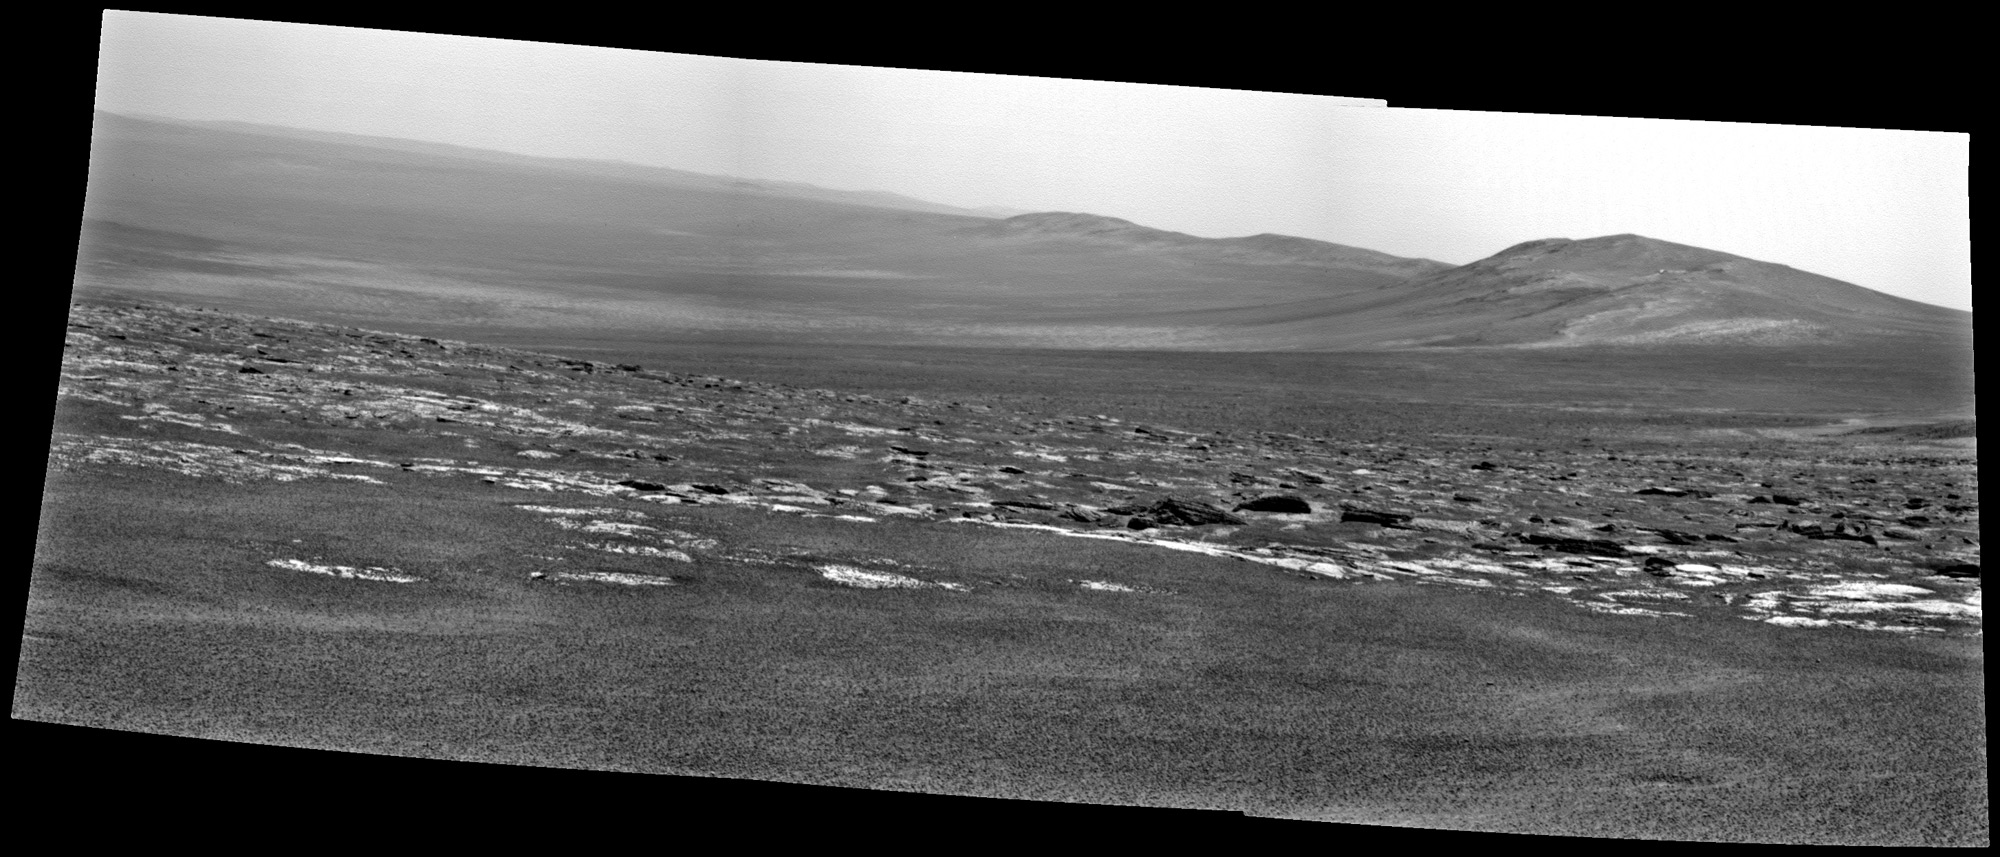 Opportunity's View Approaching Rim of Endeavour